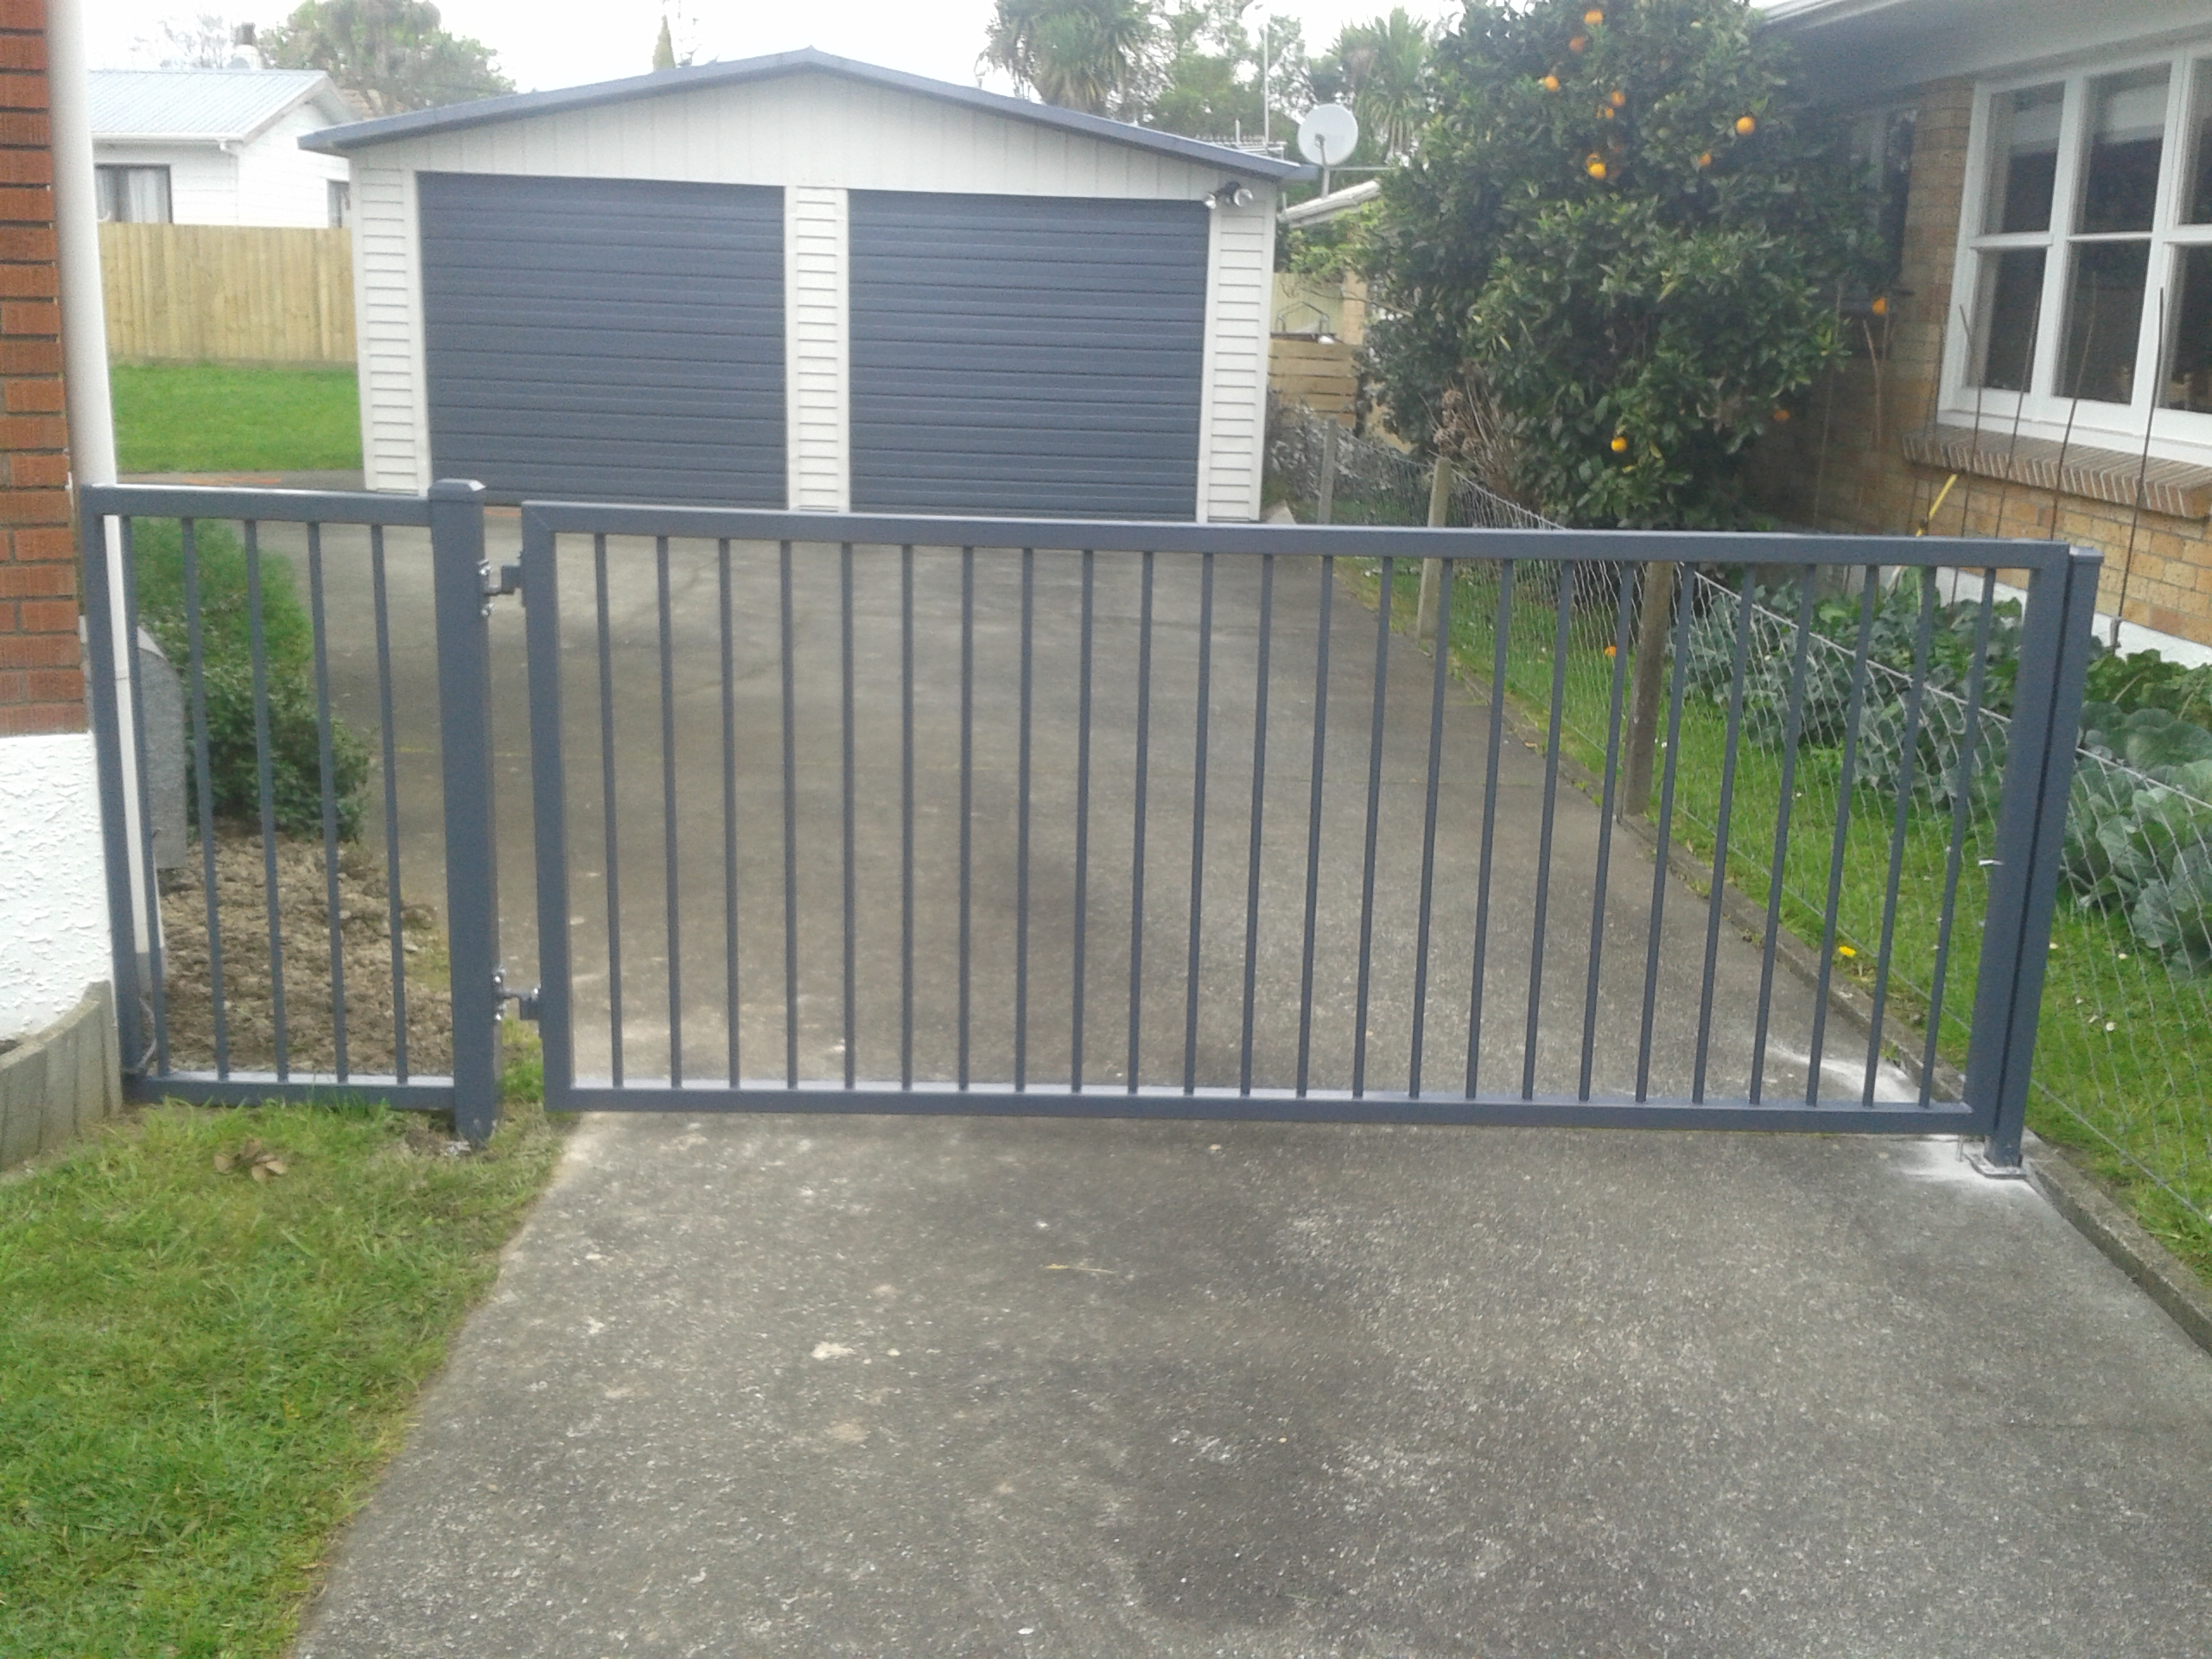 CDM1 Profile swing gate